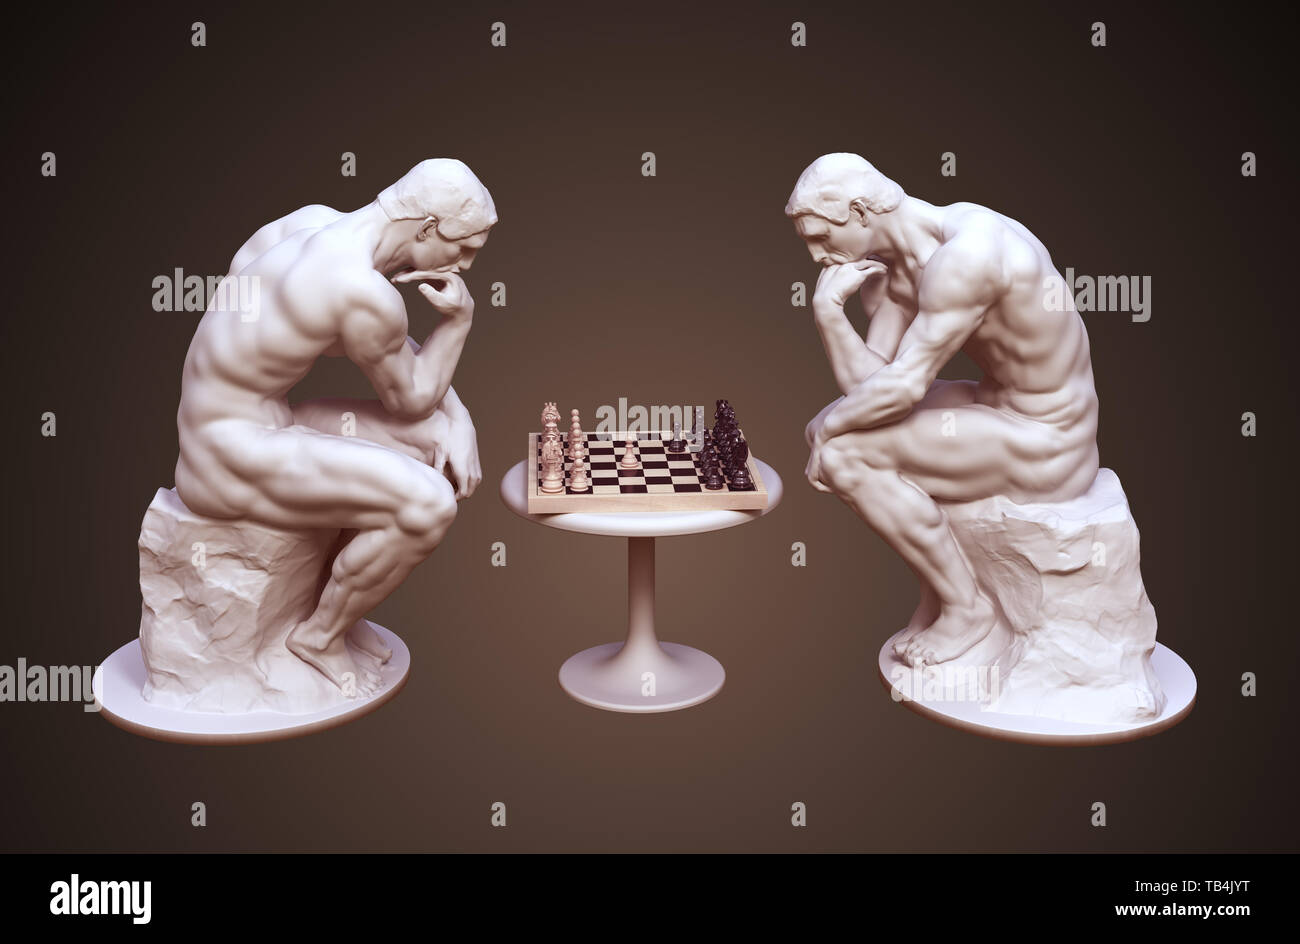 Two Thinkers Pondering The Chess Game On Brown Background. 3D Illustration. - Stock Image